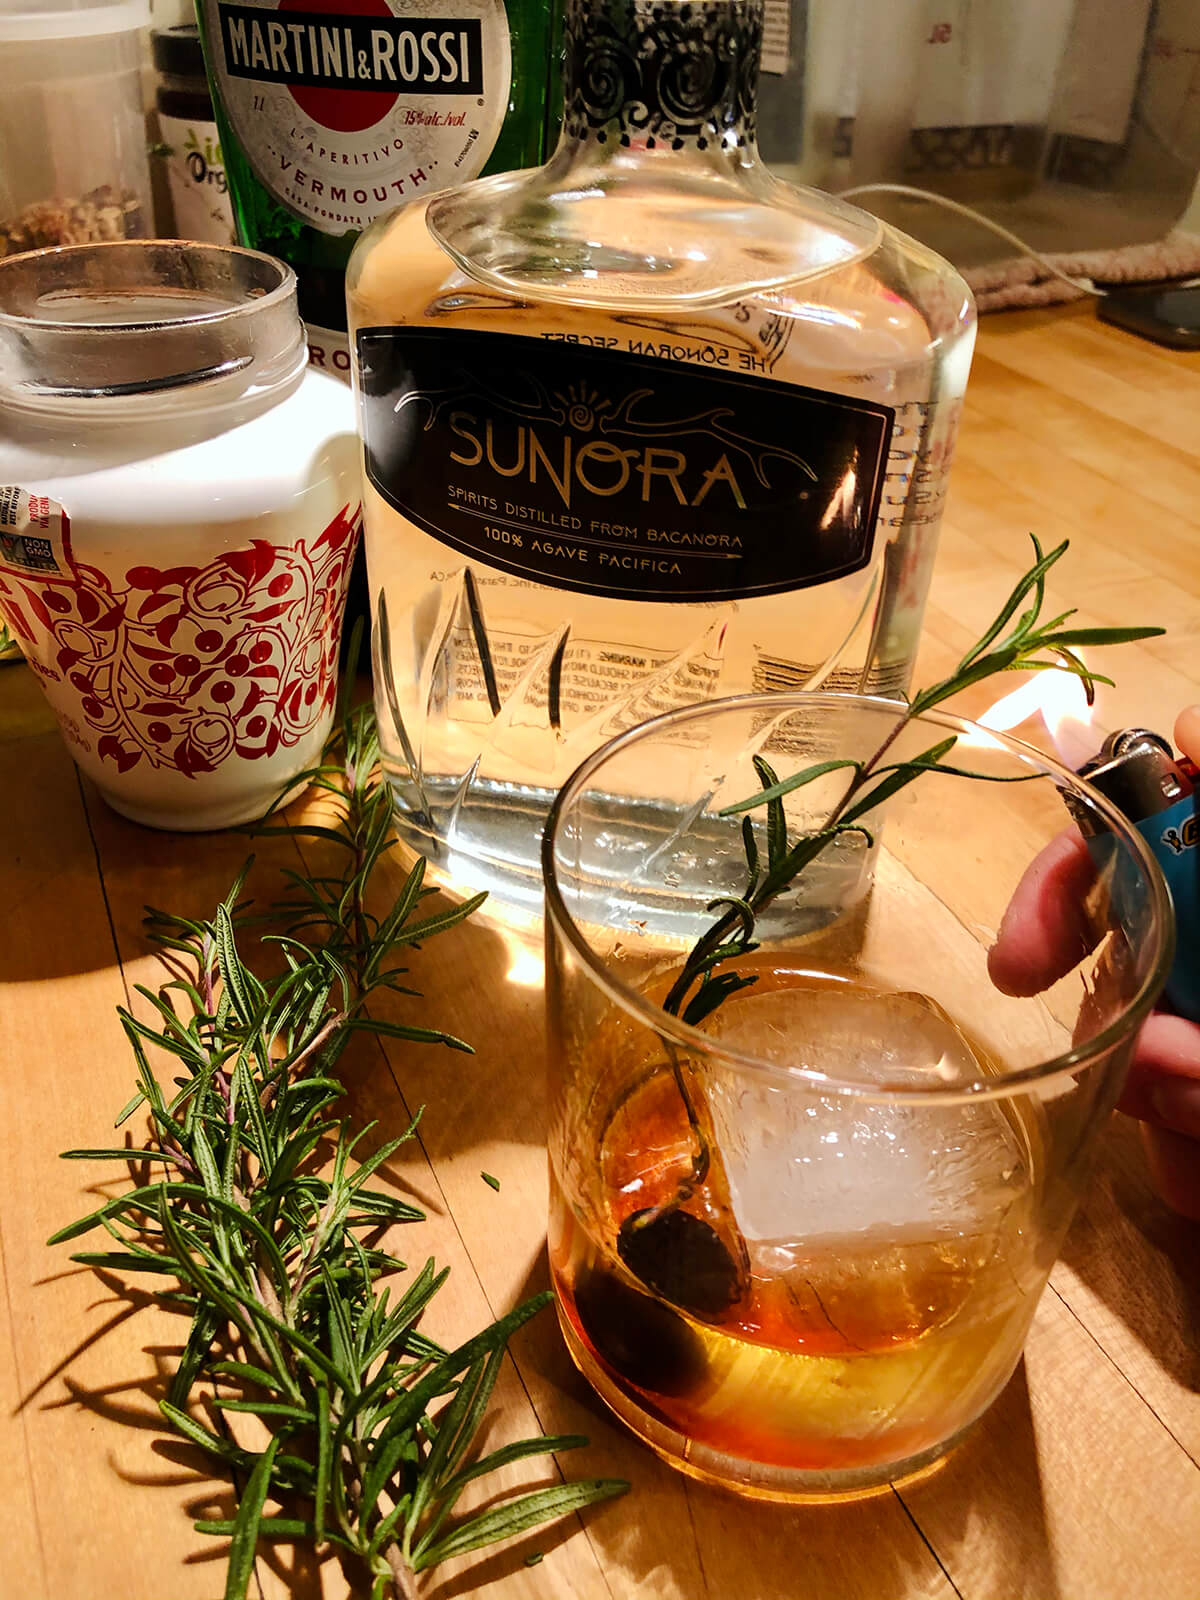 The Sunora Smokin' Herb Cocktail